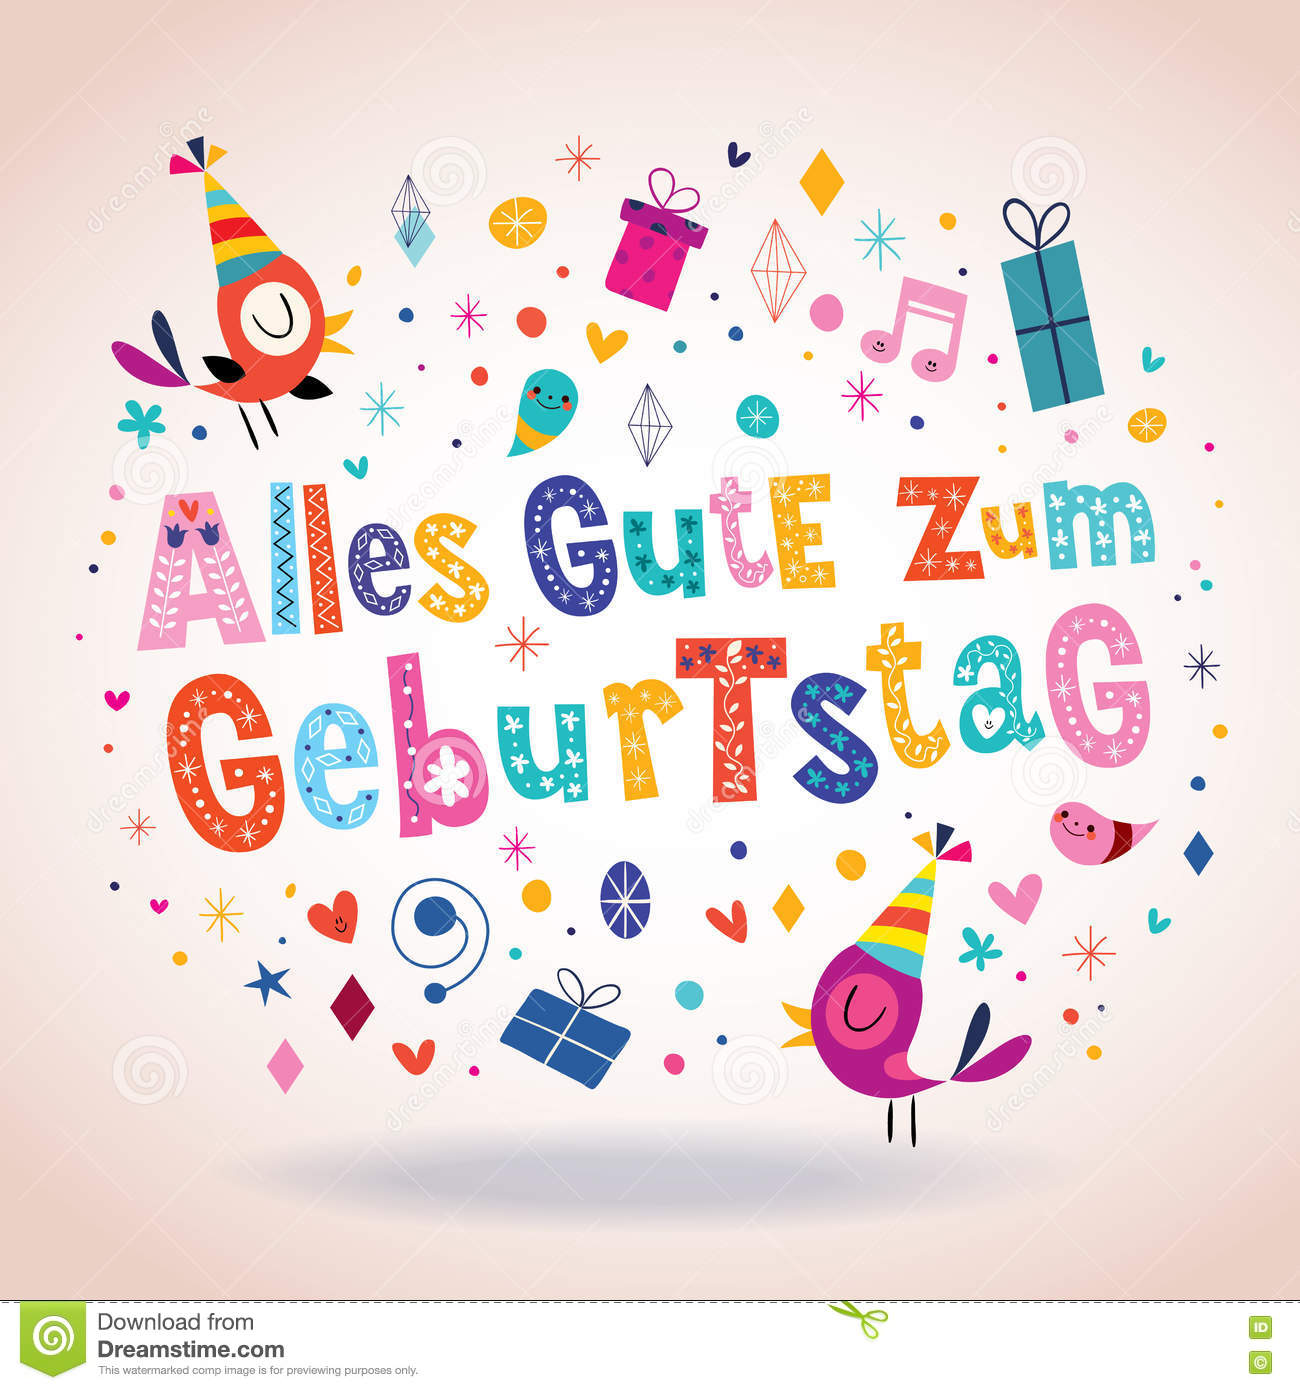 Alles Gute Zum Geburtstag Deutsch German Happy Birthday Greeting Card